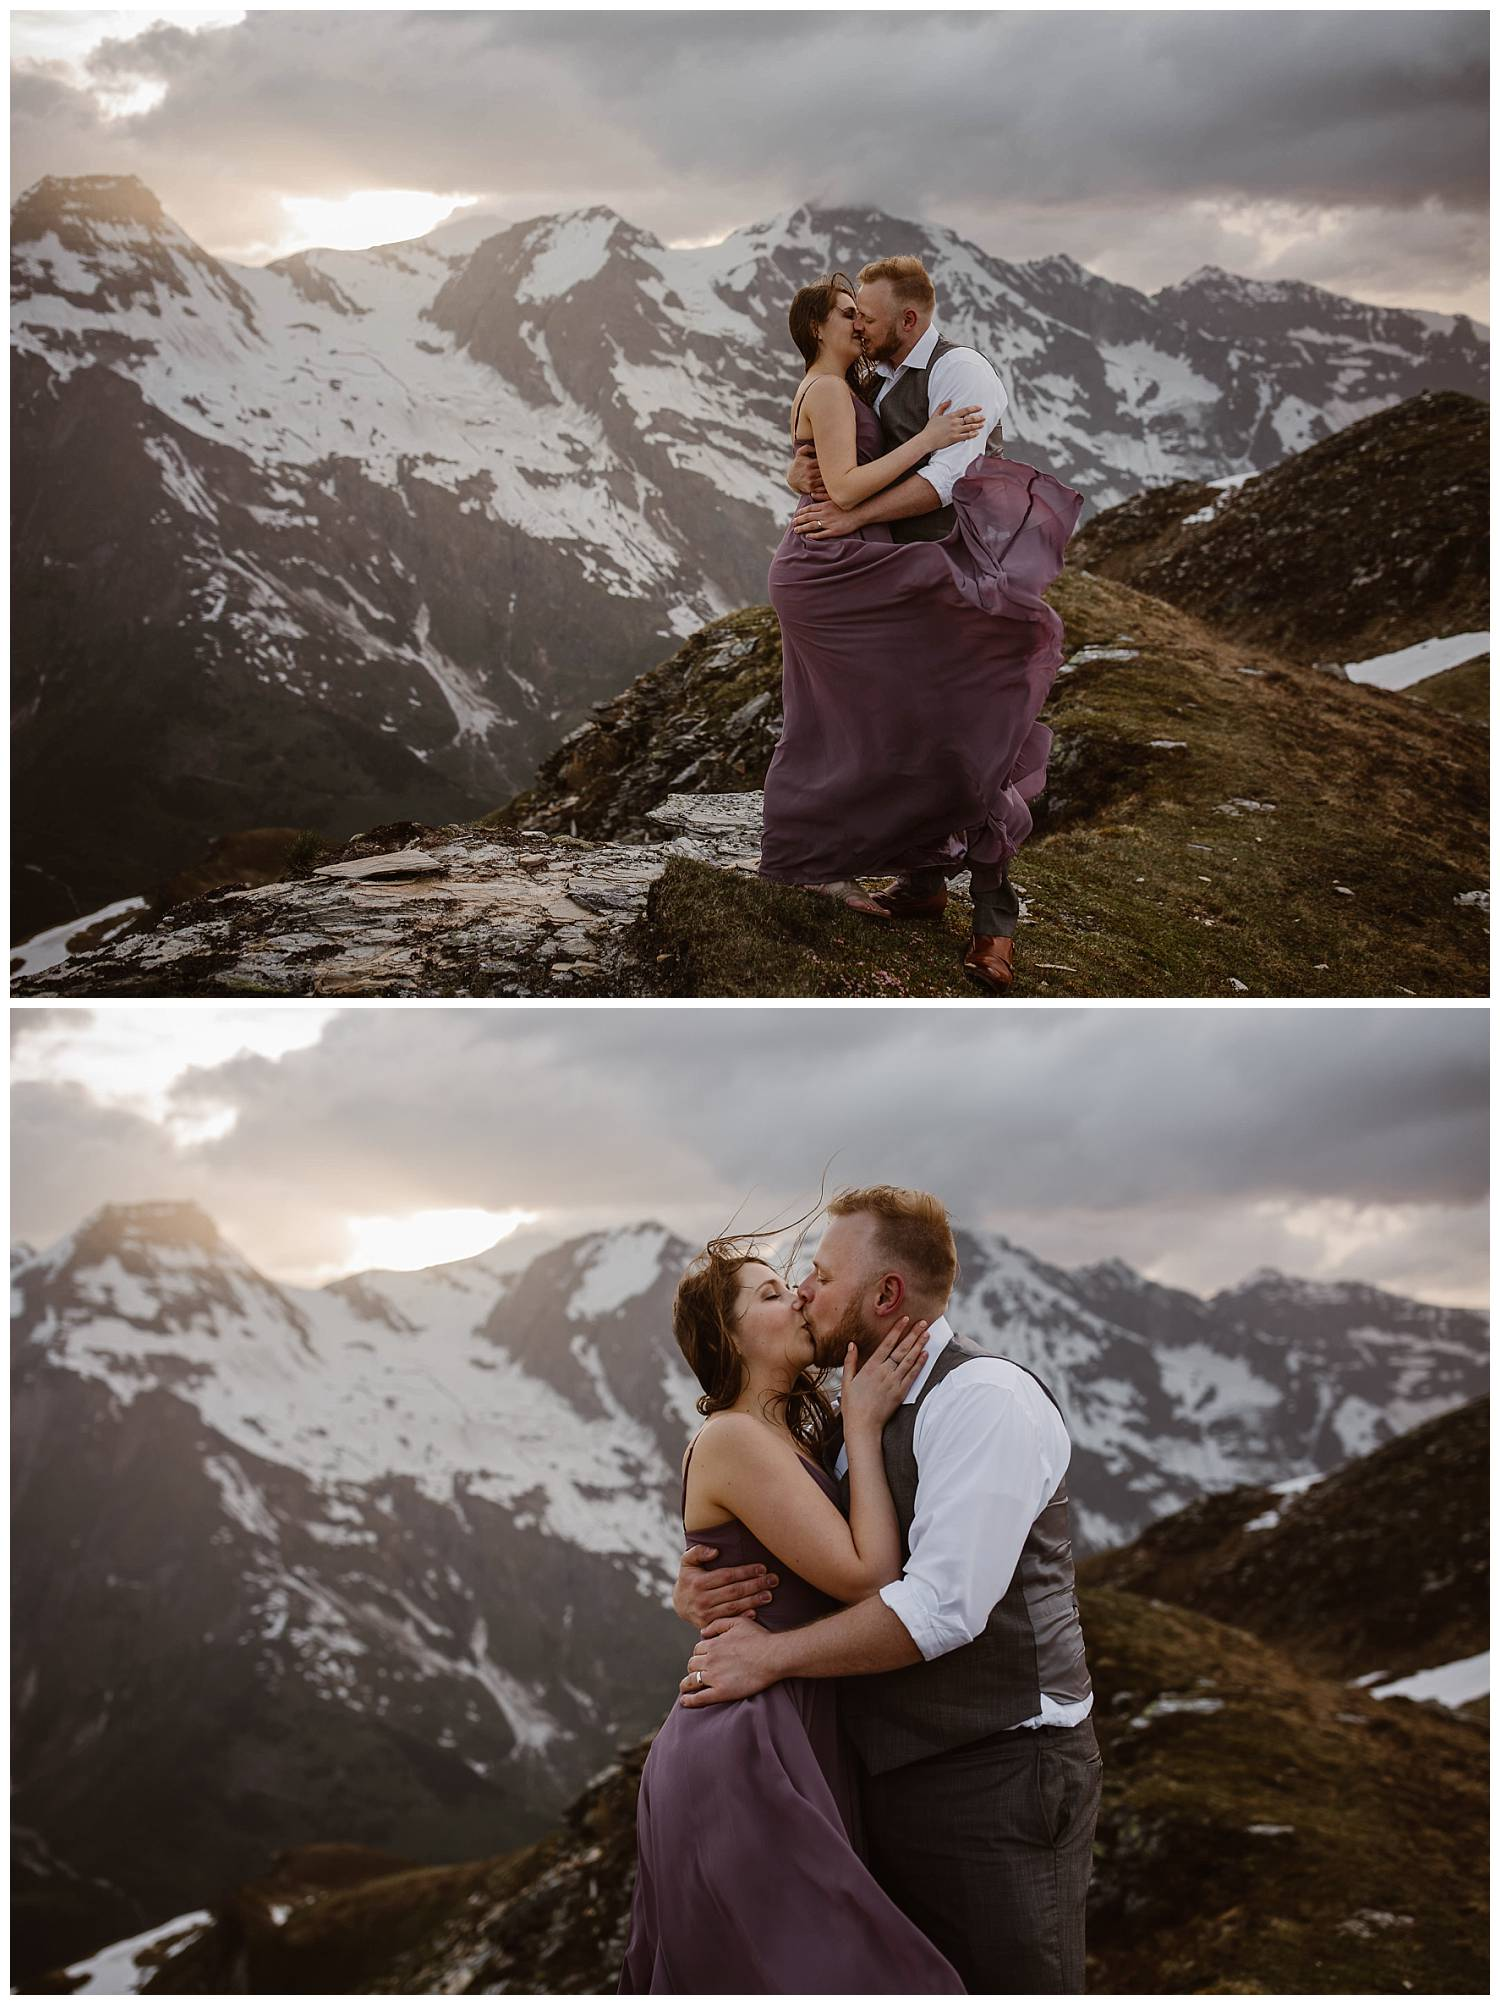 epic-vow-renewal-in-the-alps